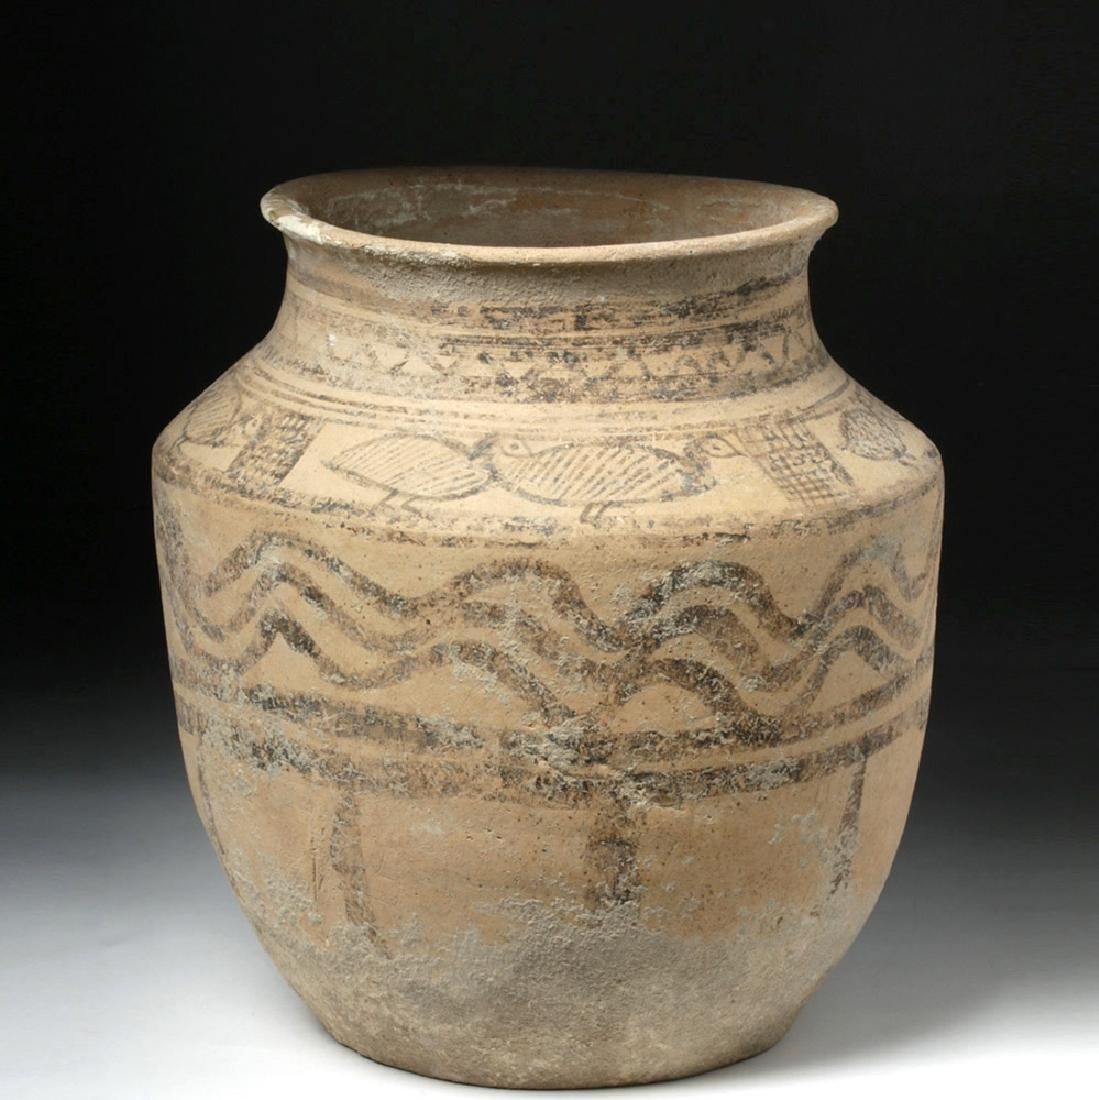 Indus Valley Decorated Pottery Burial Urn - Peacocks - 3